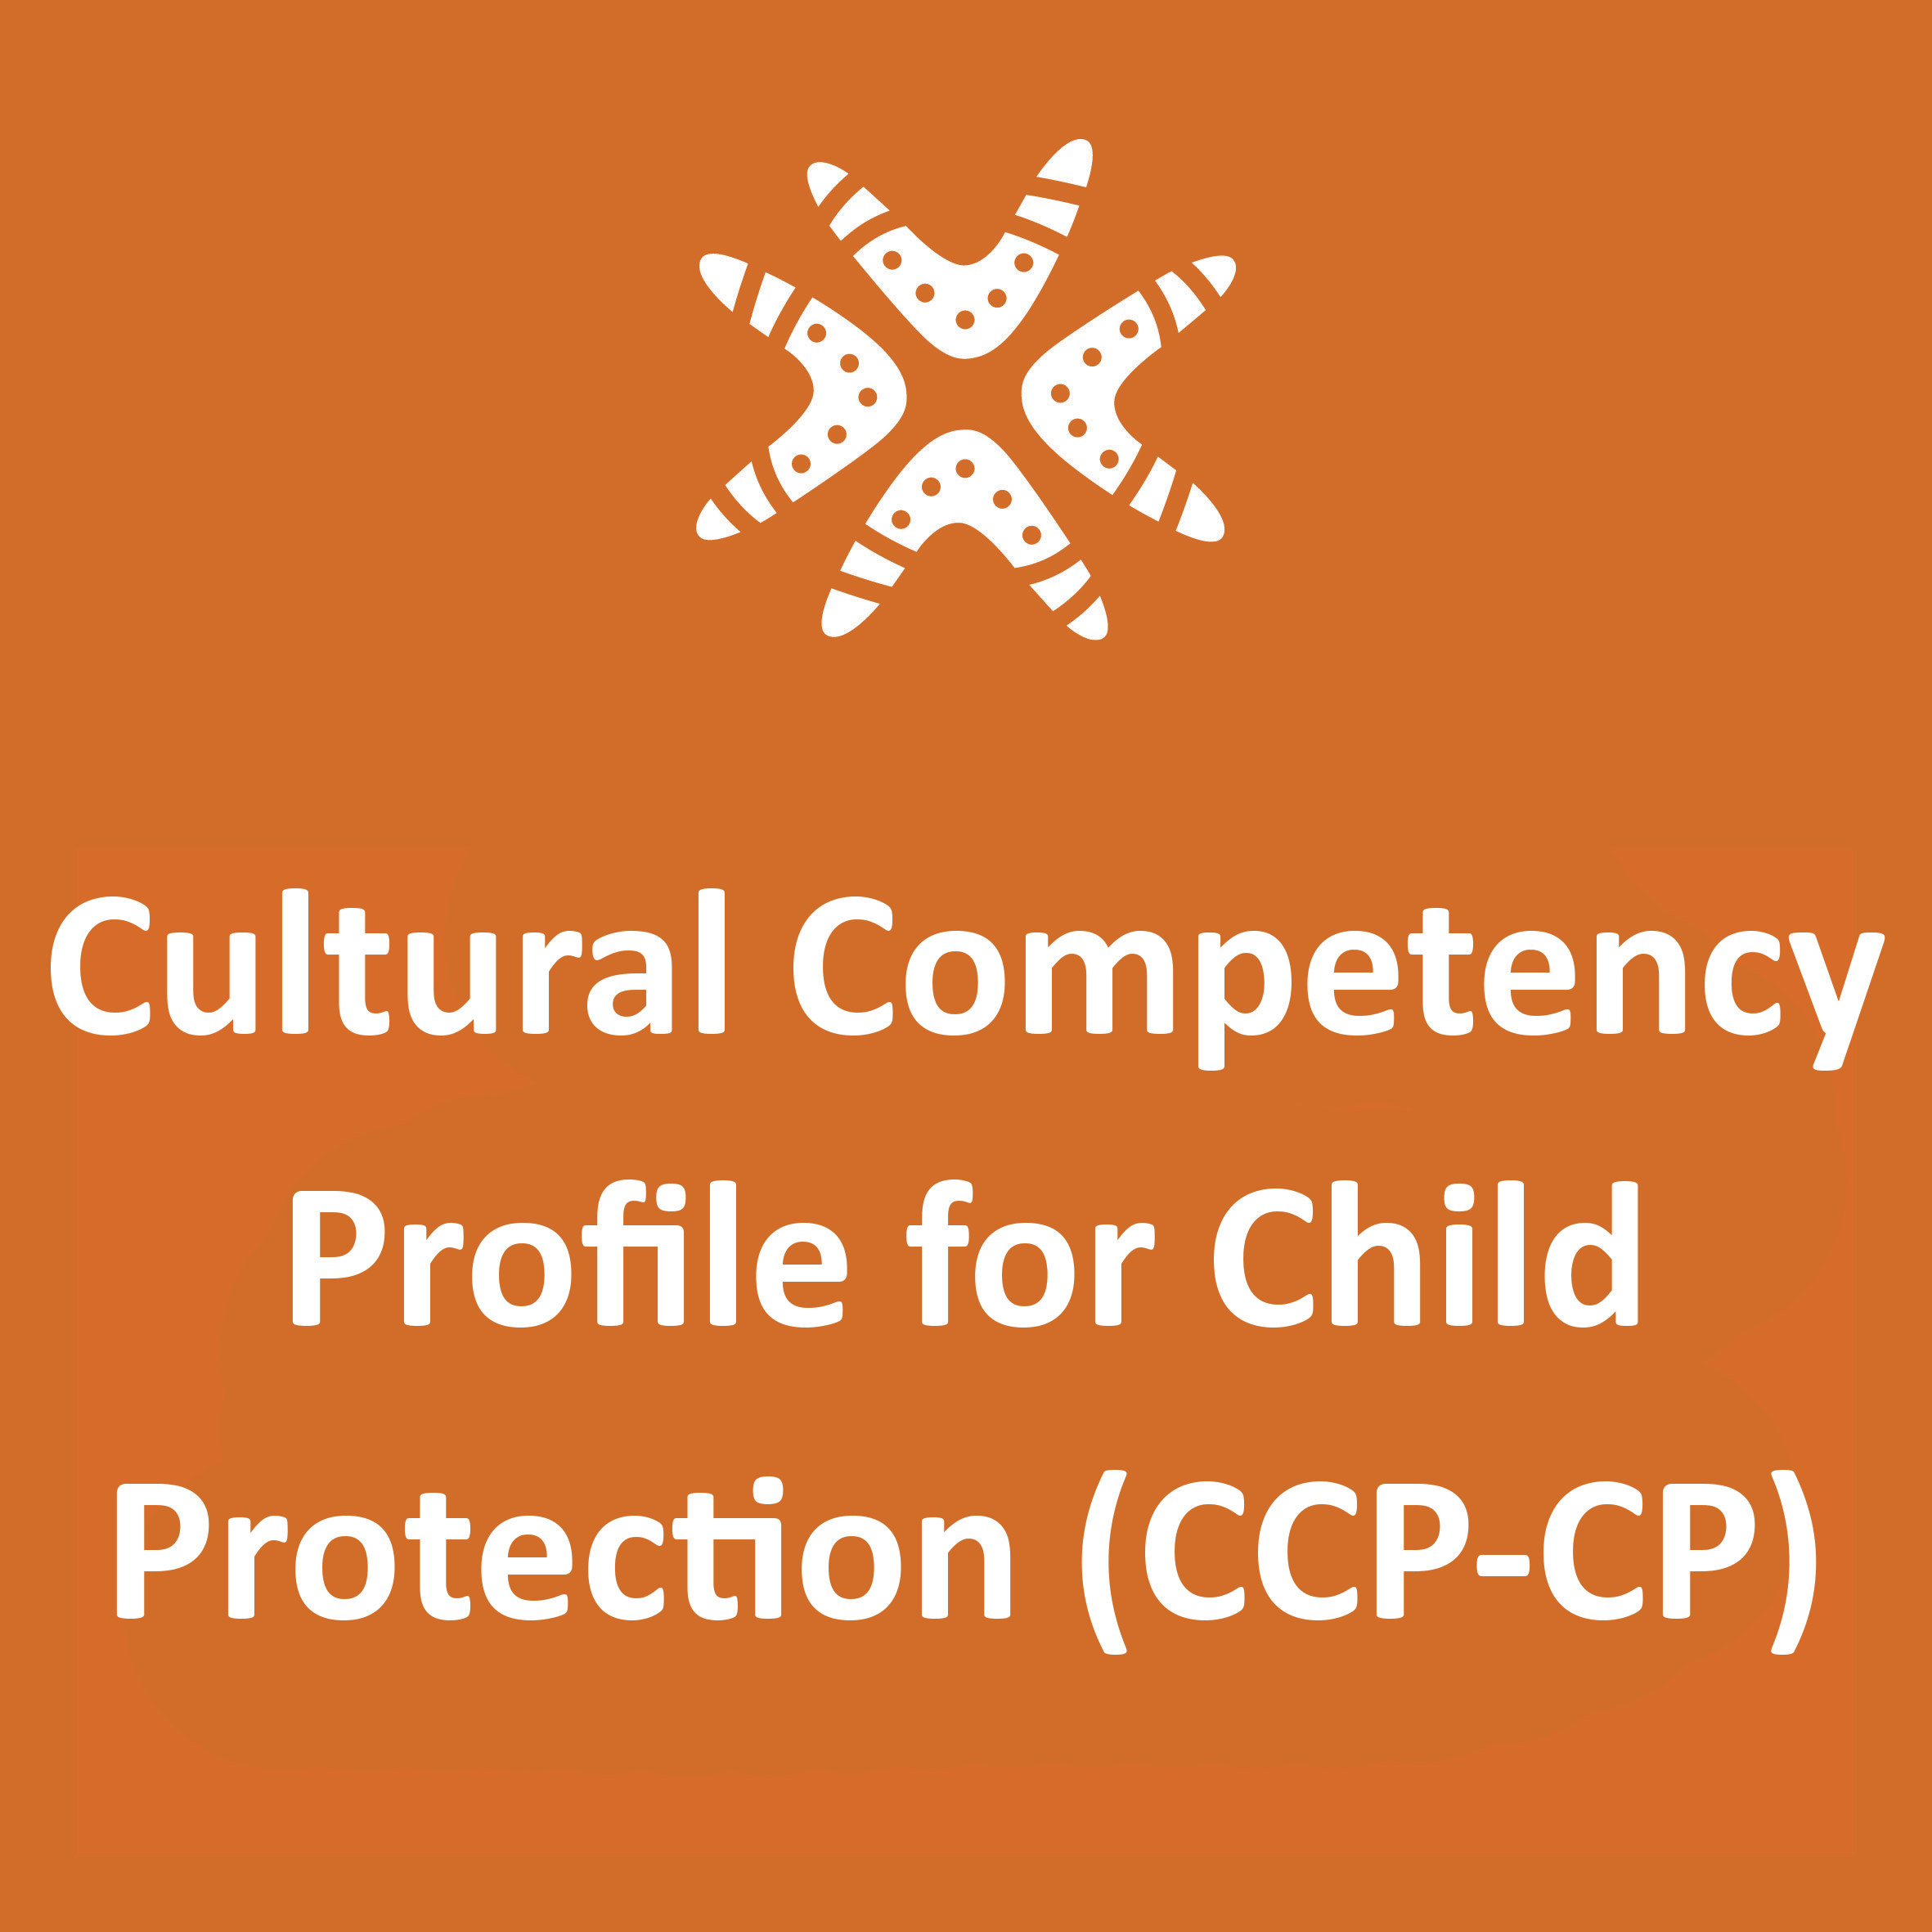 The Cultural Competency Profile for Child Protection (CCP-CP)